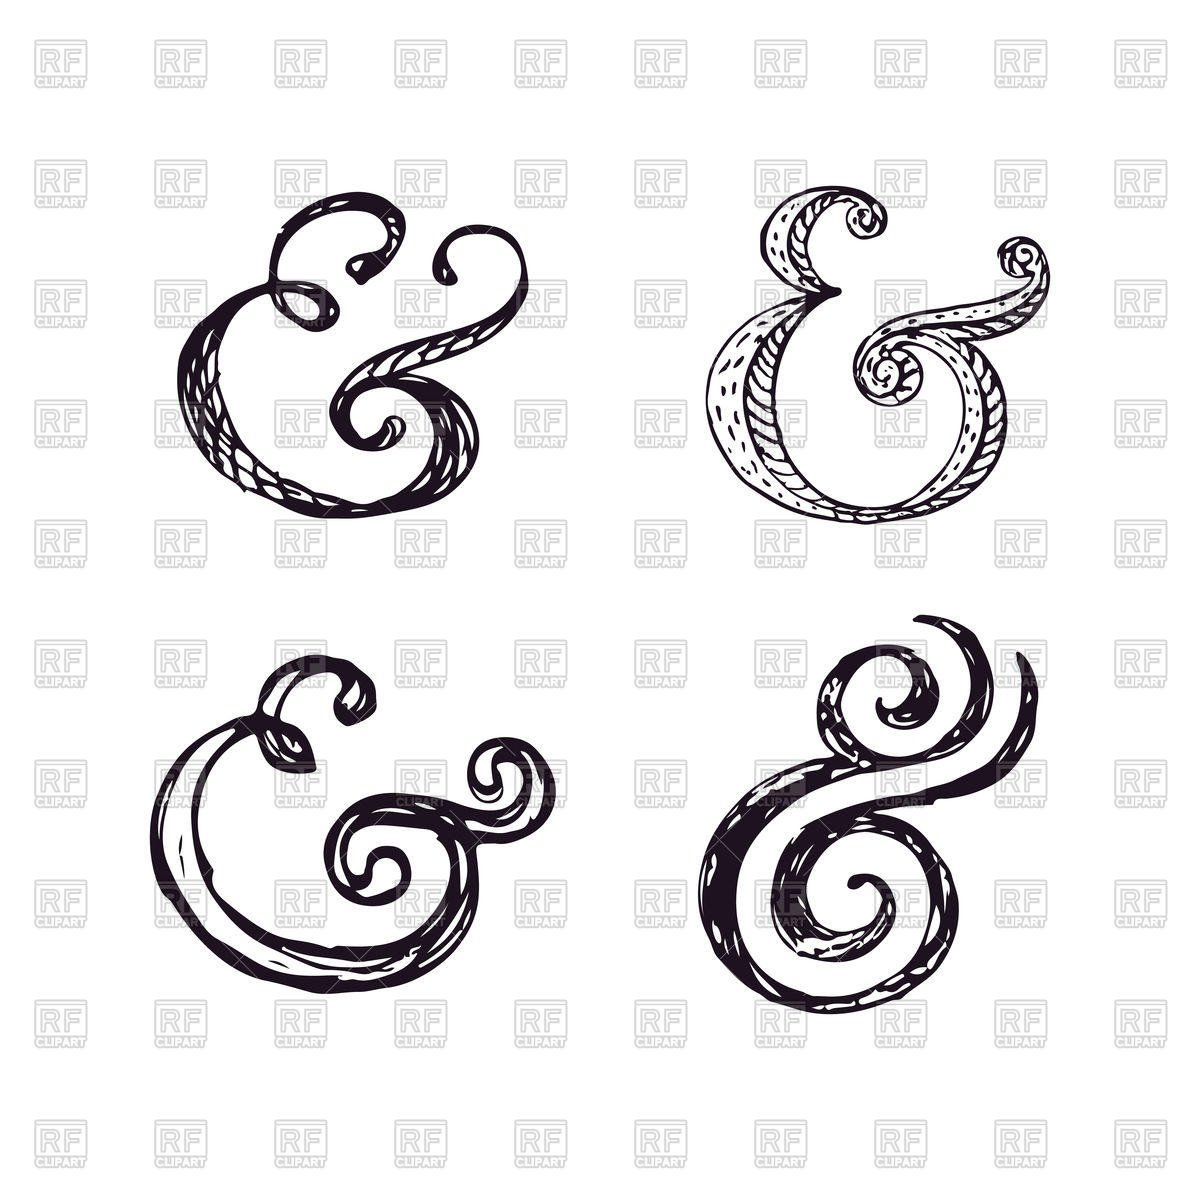 1200x1200 Hand Drawn Sketchy Ampersand Vector Image Vector Artwork Of